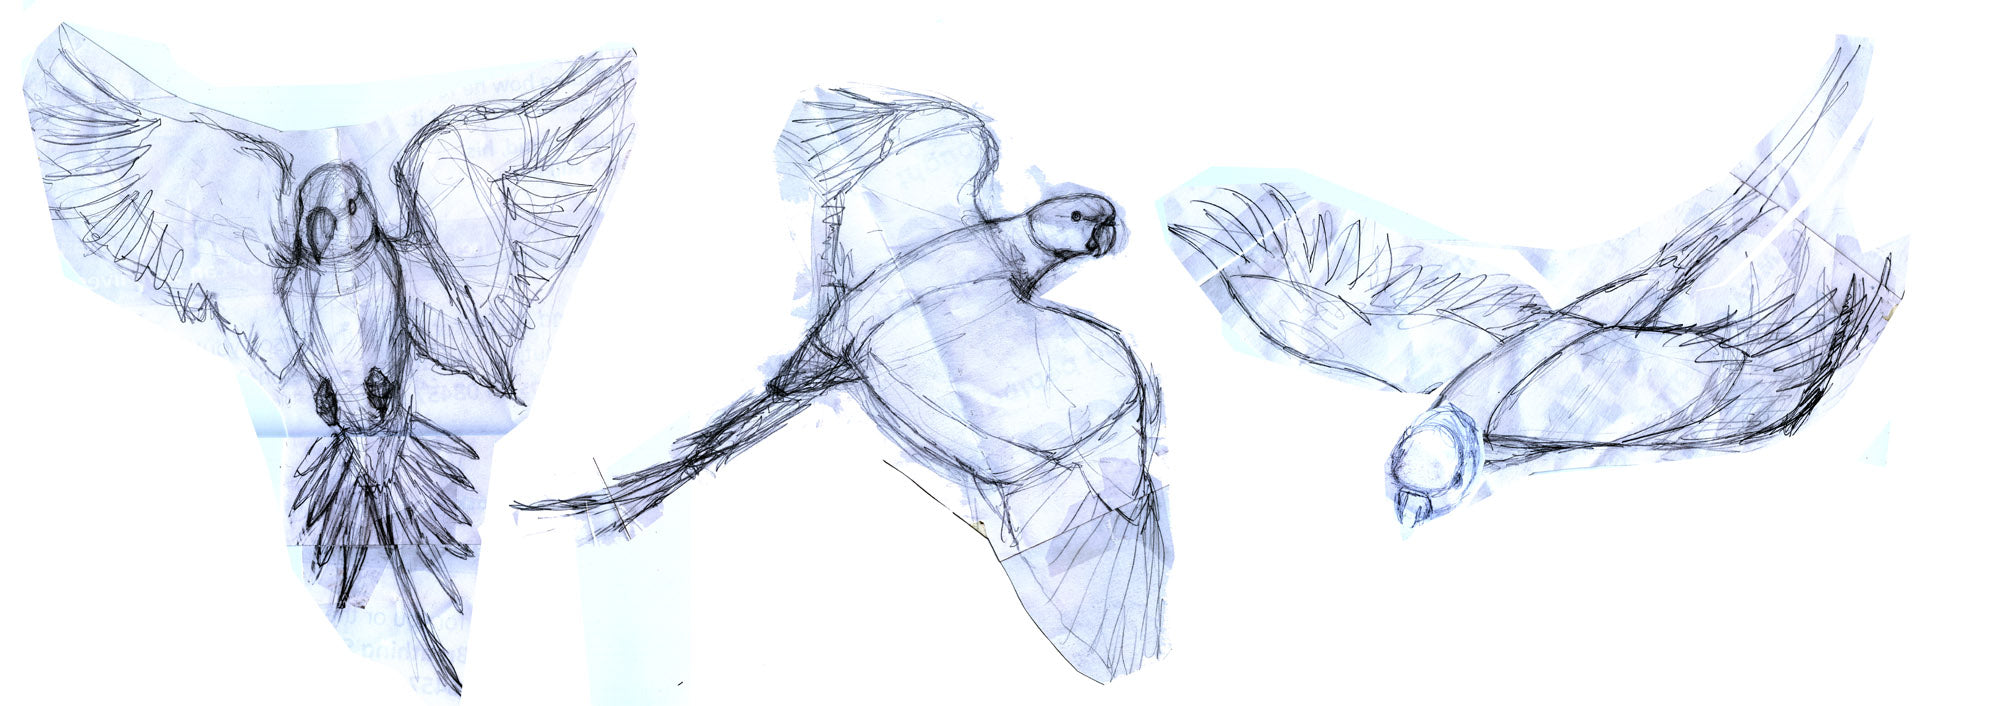 Sketches of flying parakeets